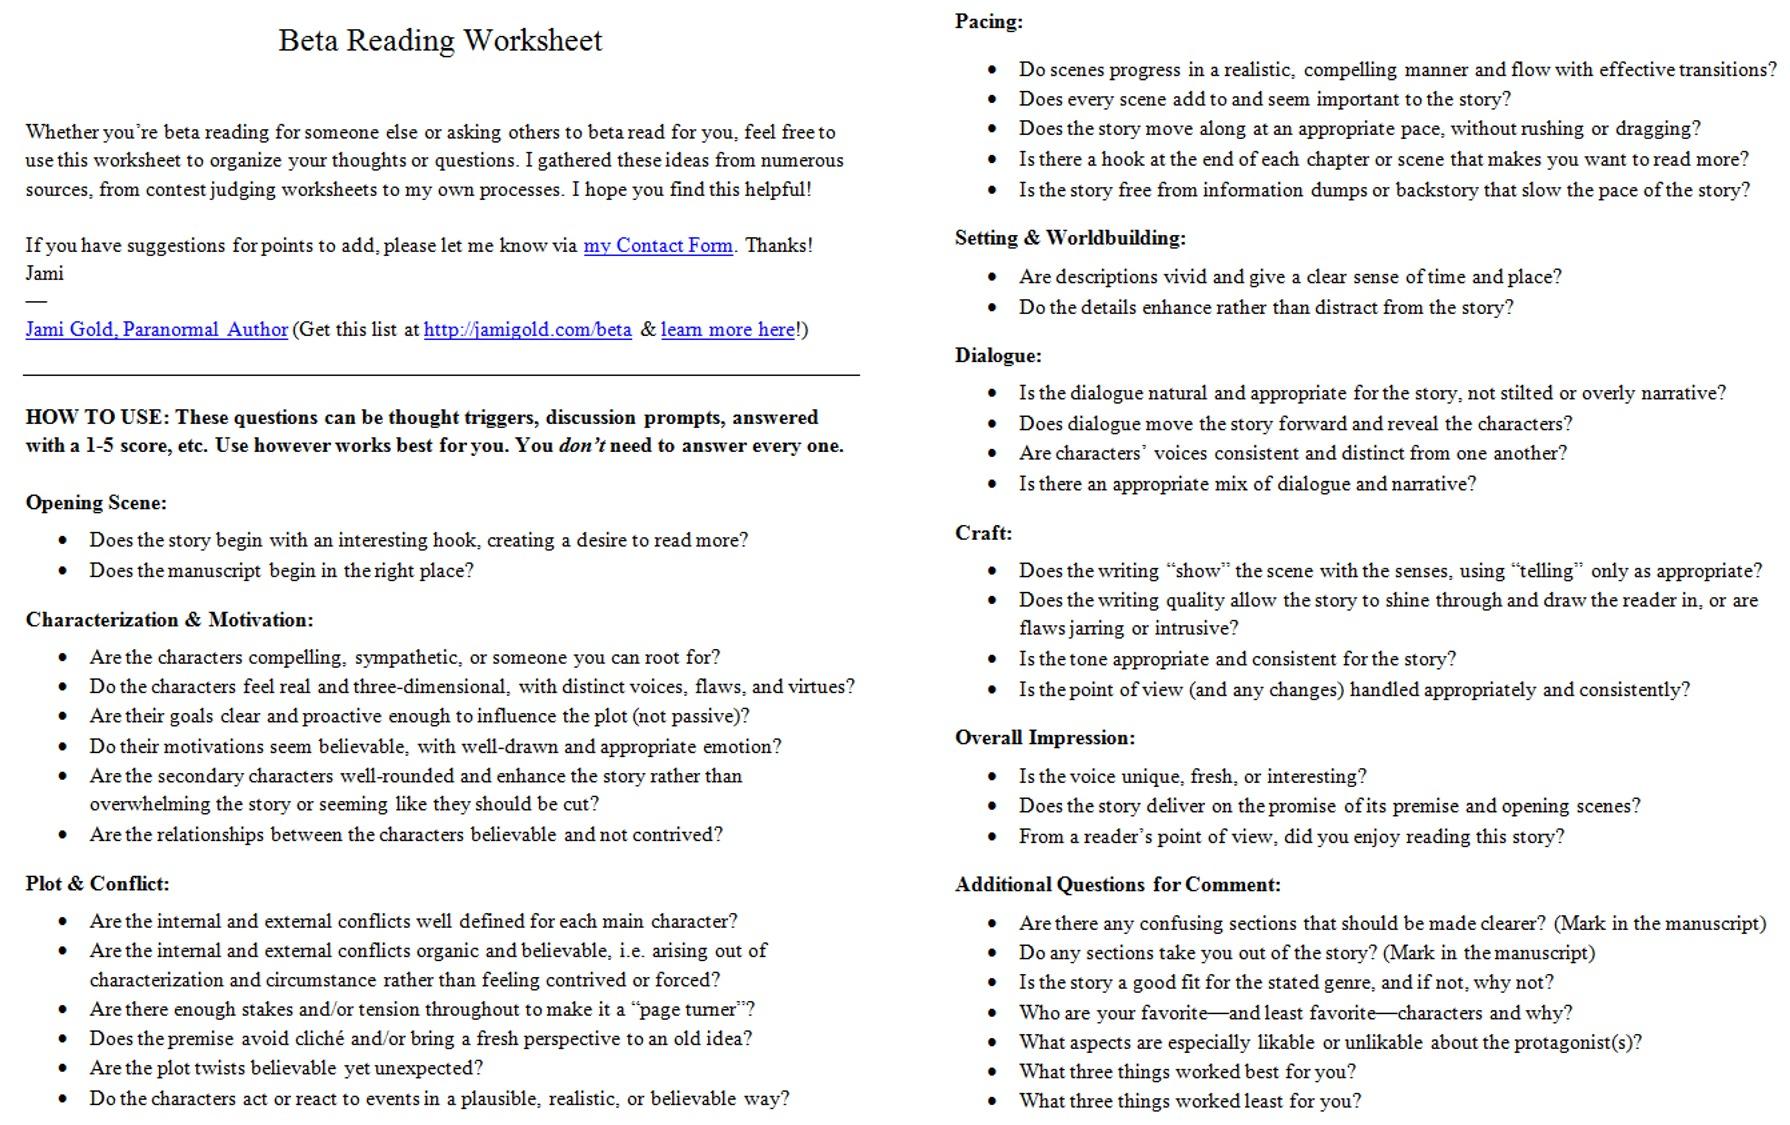 Aldiablosus  Terrific Worksheets For Writers  Jami Gold Paranormal Author With Heavenly Screen Shot Of The Twopage Beta Reading Worksheet With Attractive Double Cross Worksheet Also Money Worksheets Nd Grade In Addition Constant Velocity Model Worksheet  And Worksheet For Kids As Well As Middle School Worksheets Additionally Appositive Worksheet From Jamigoldcom With Aldiablosus  Heavenly Worksheets For Writers  Jami Gold Paranormal Author With Attractive Screen Shot Of The Twopage Beta Reading Worksheet And Terrific Double Cross Worksheet Also Money Worksheets Nd Grade In Addition Constant Velocity Model Worksheet  From Jamigoldcom